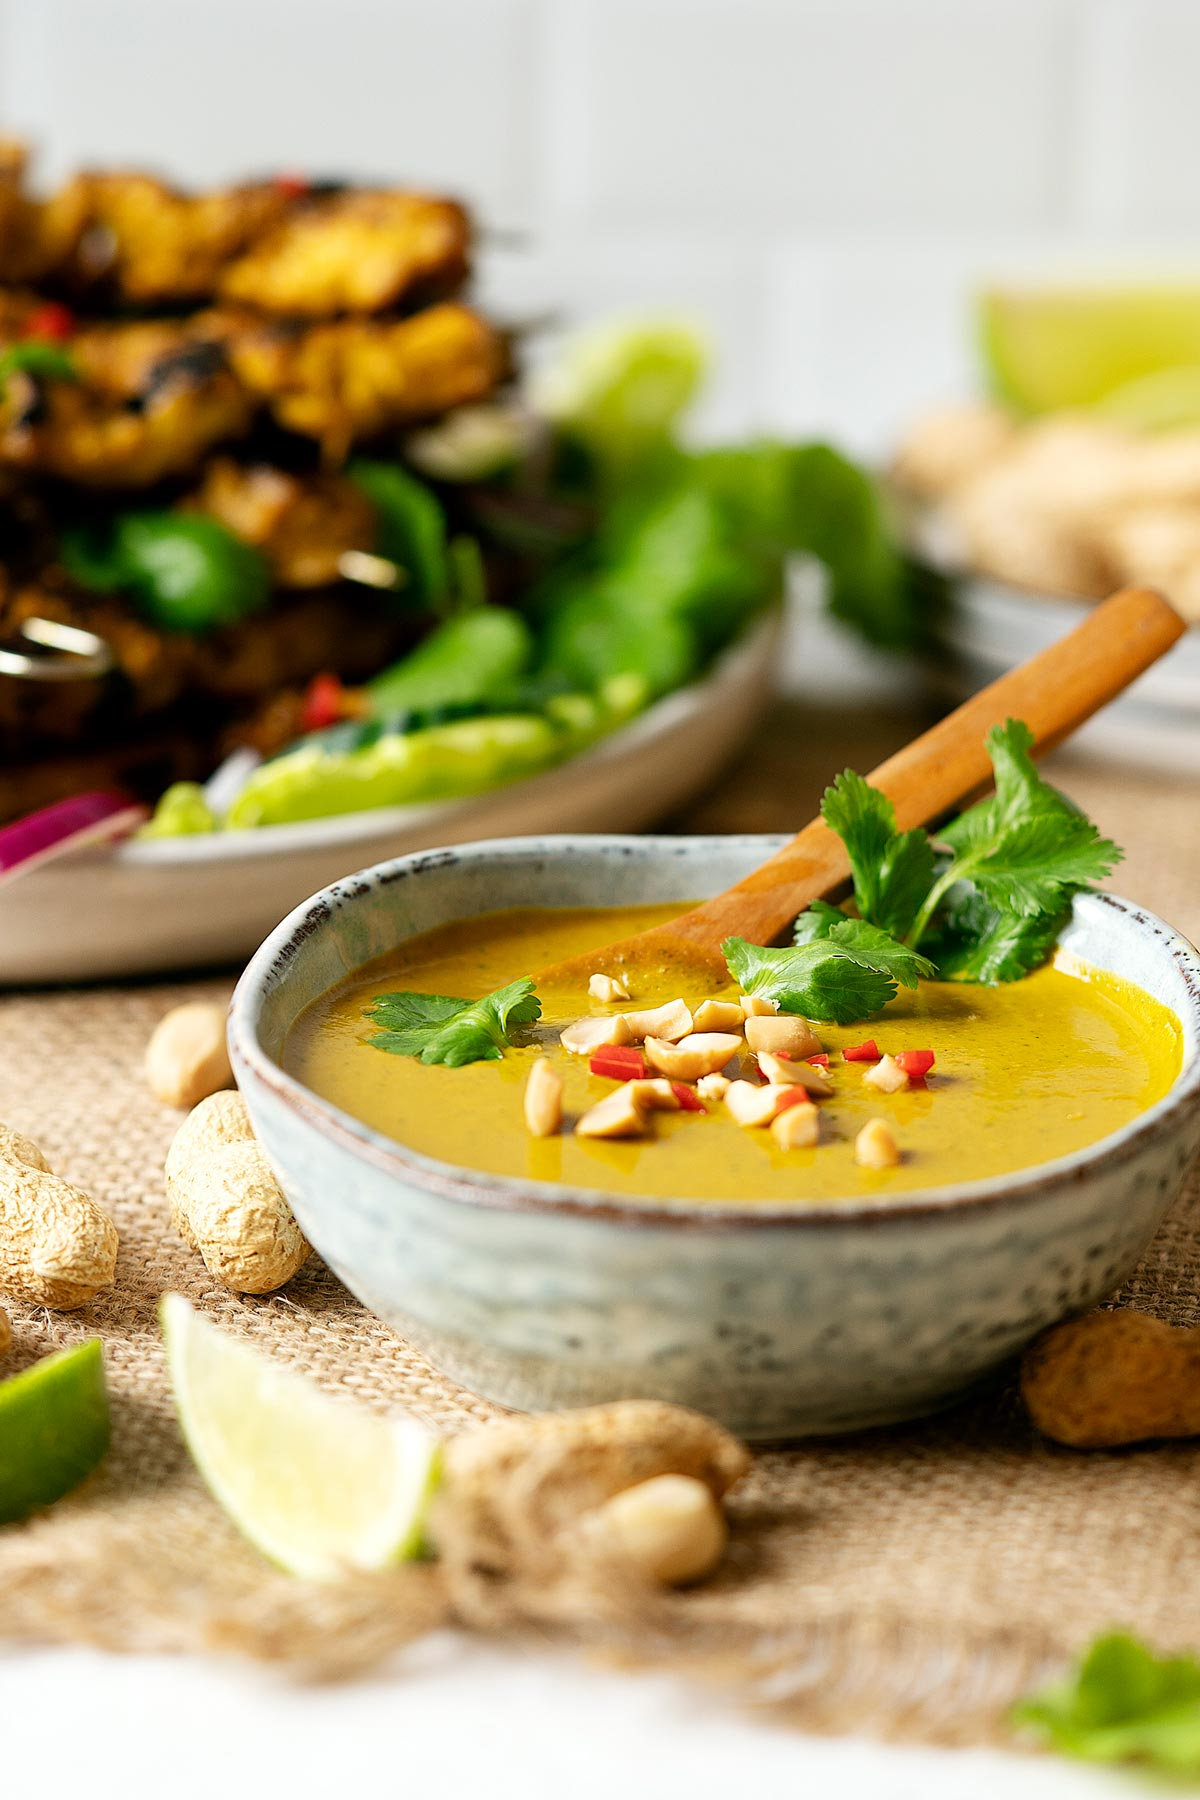 Peanut satay sauce in a bowl with some chicken satay in the background